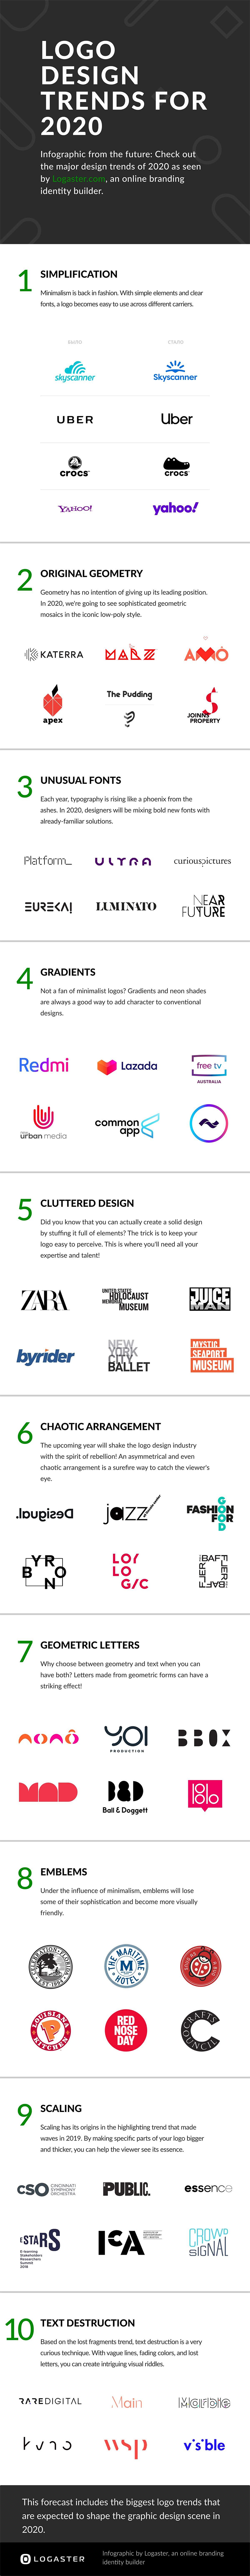 Infographic lists a range of logo design trends